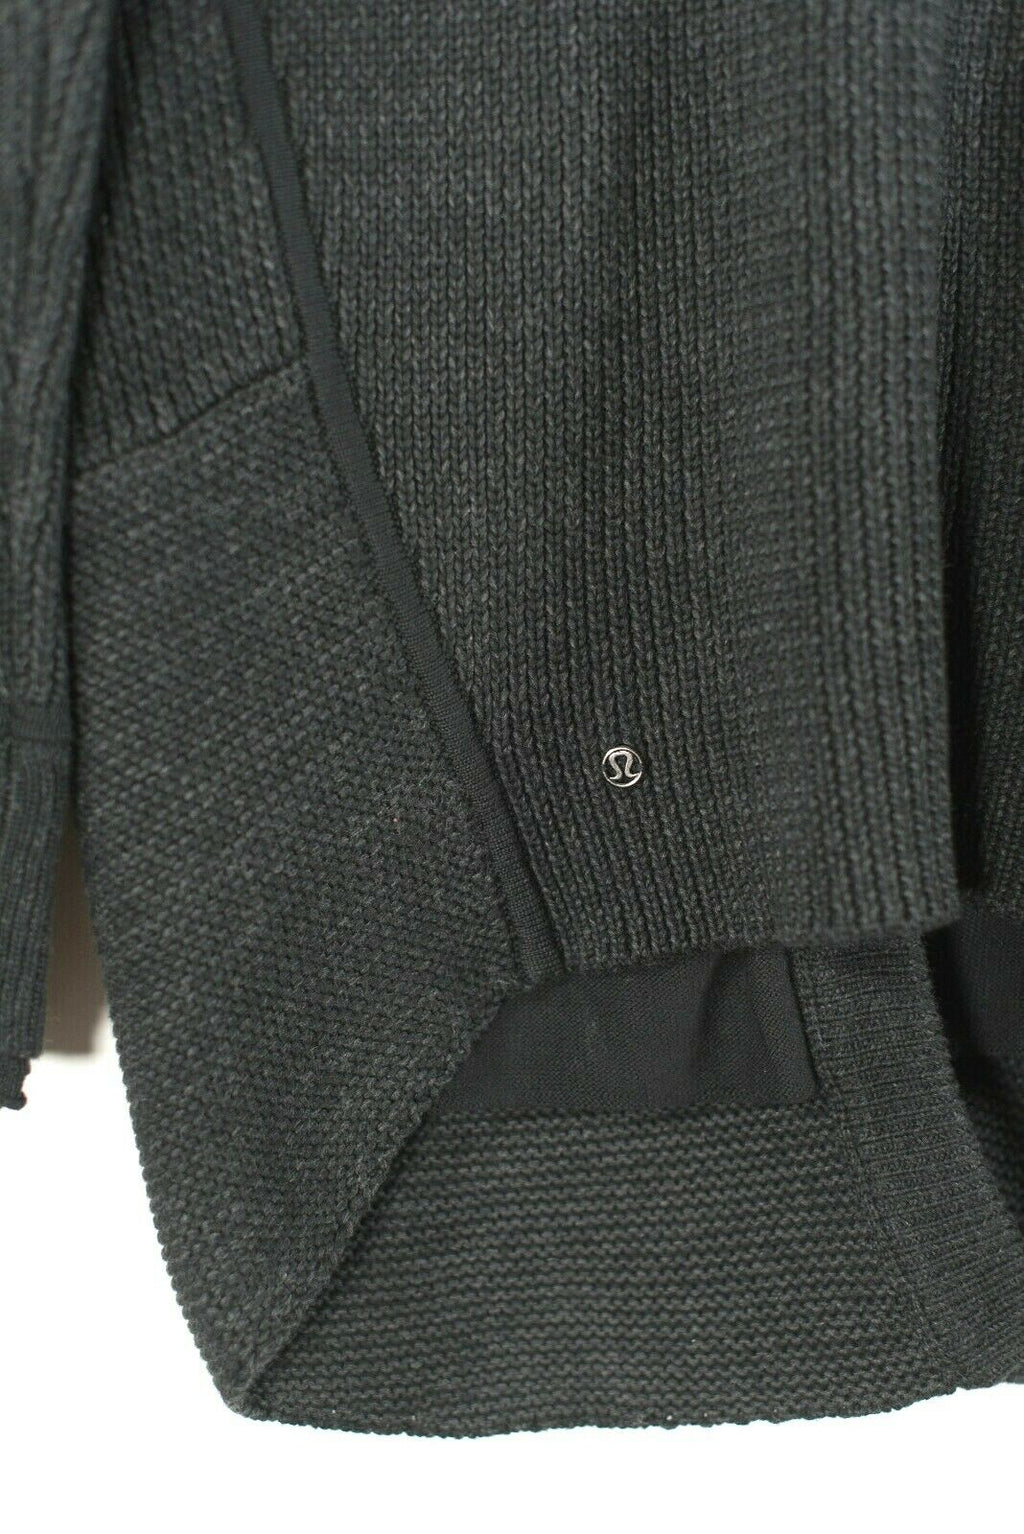 Lululemon 6 8 Grey Post Practice Cardigan Sweater